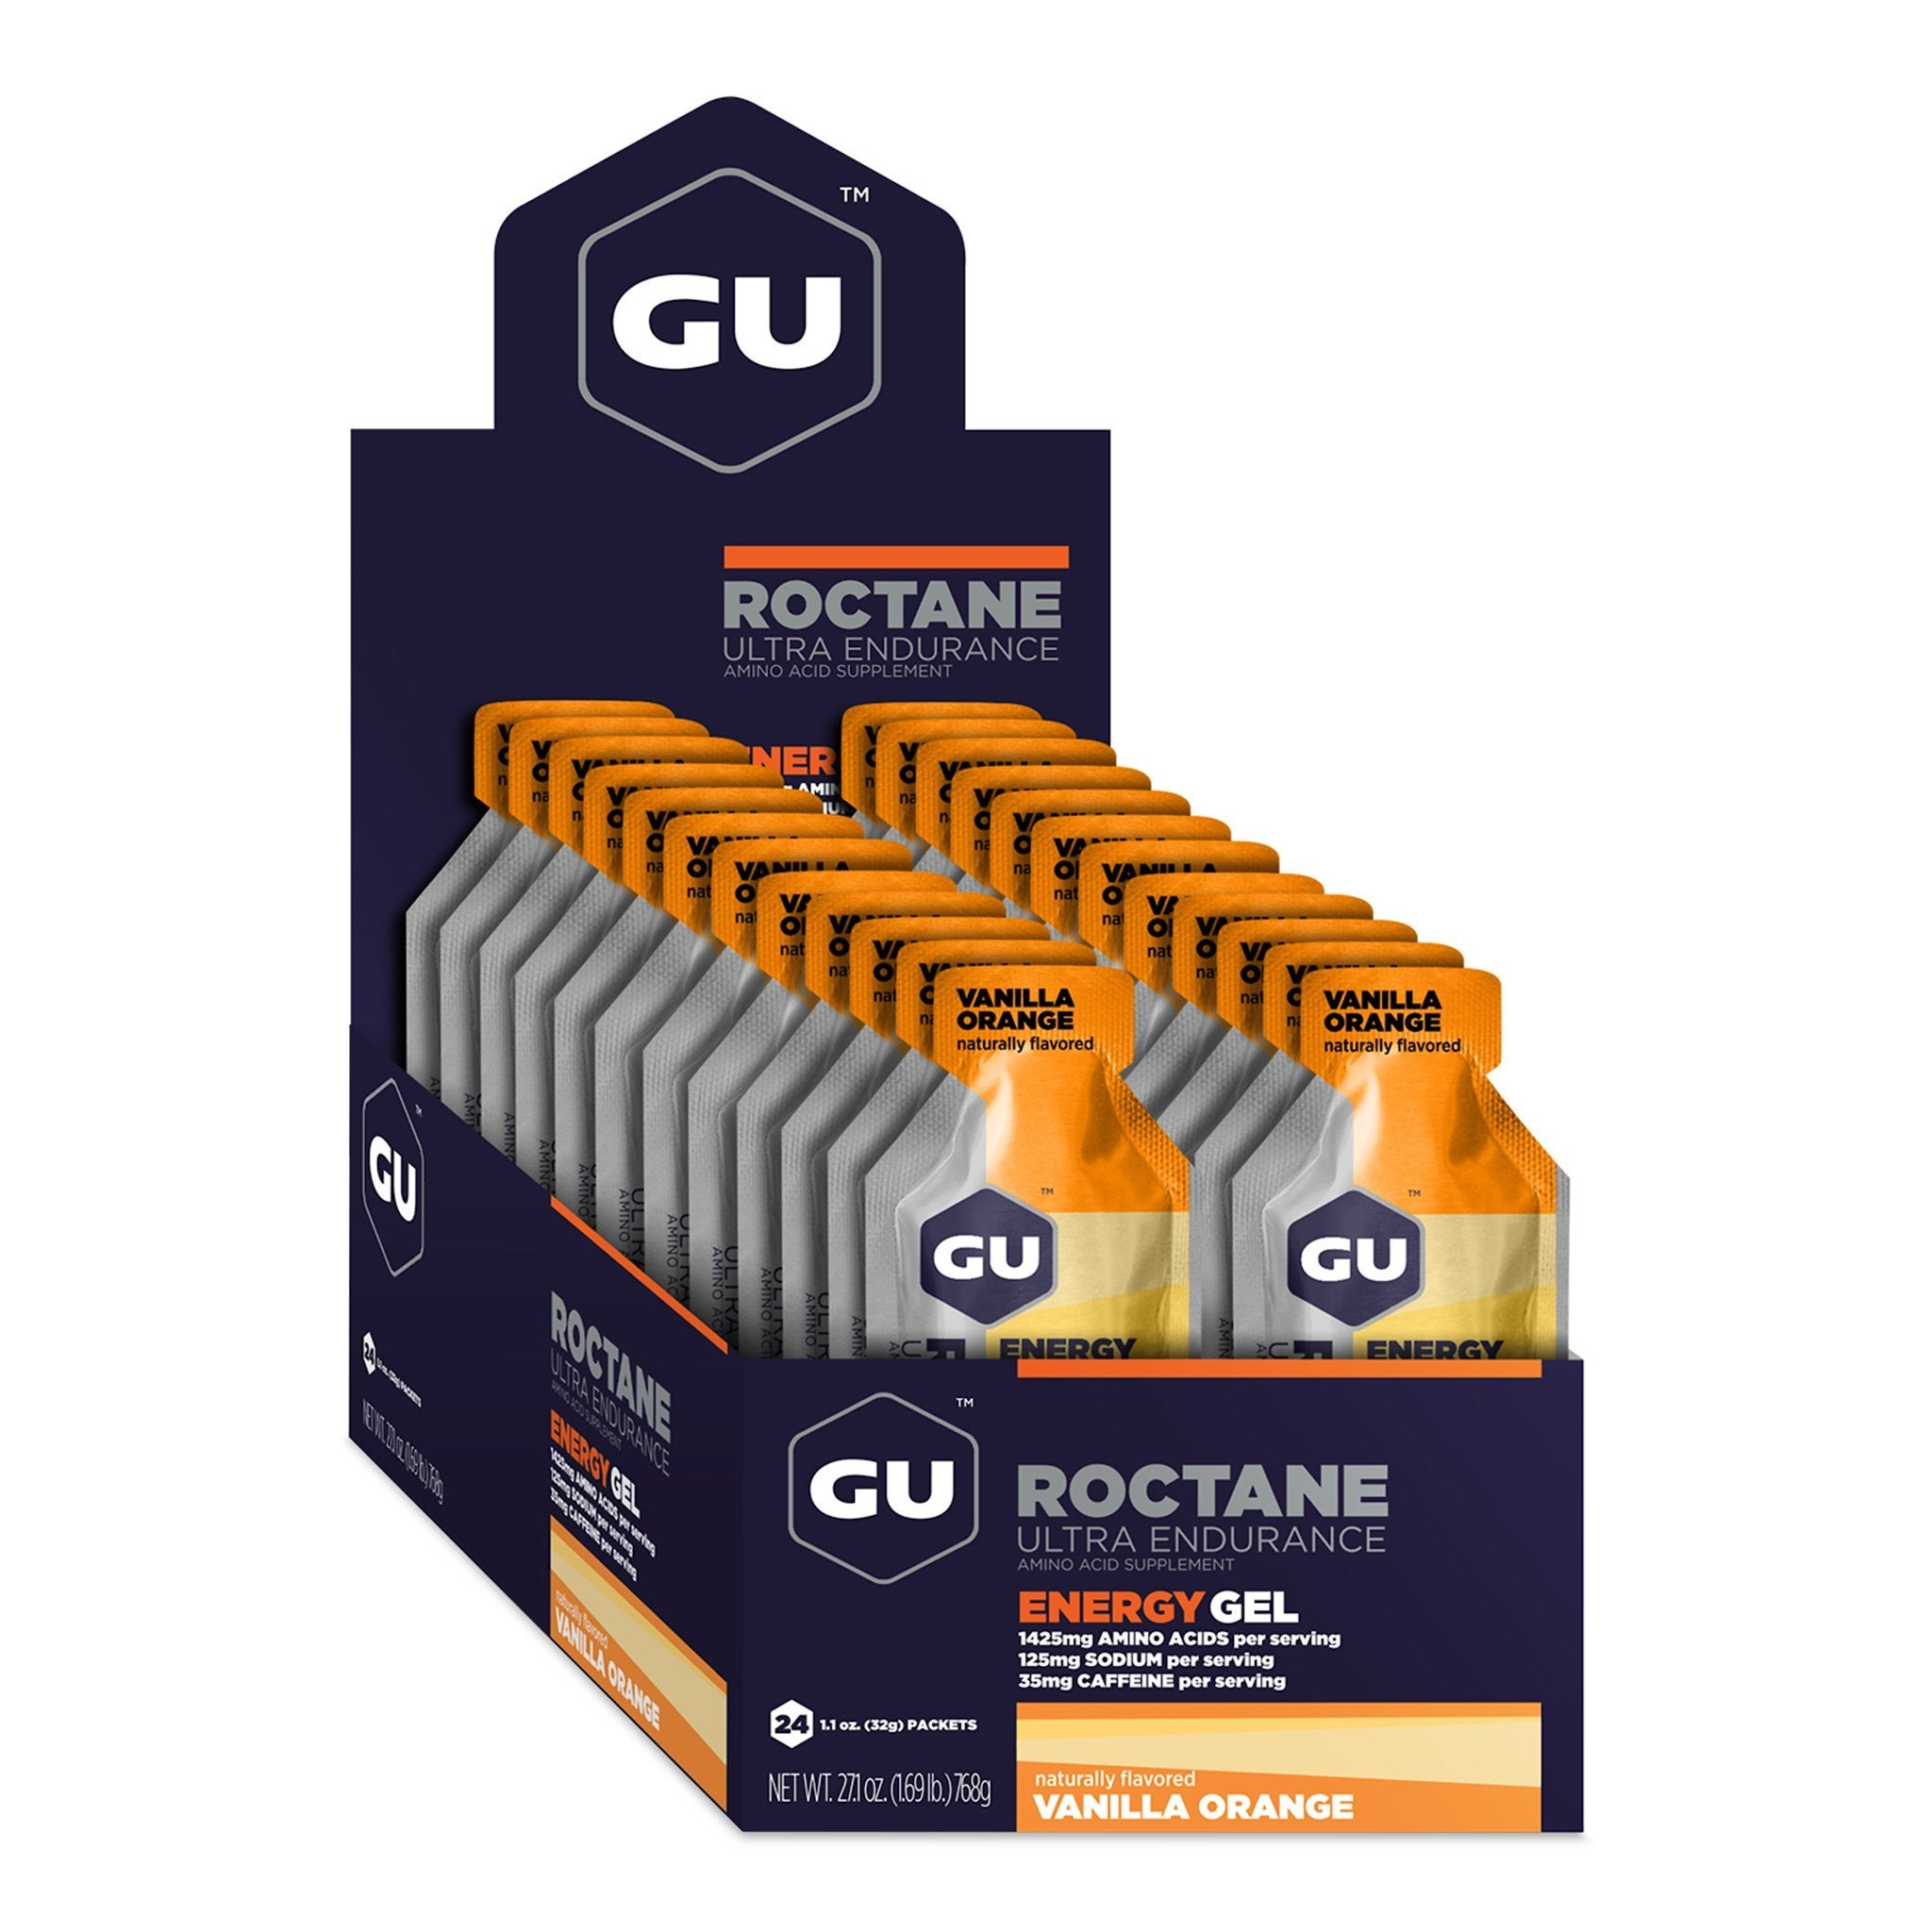 GU Roctane Energy Gel - Vanilla Orange - Box of 24